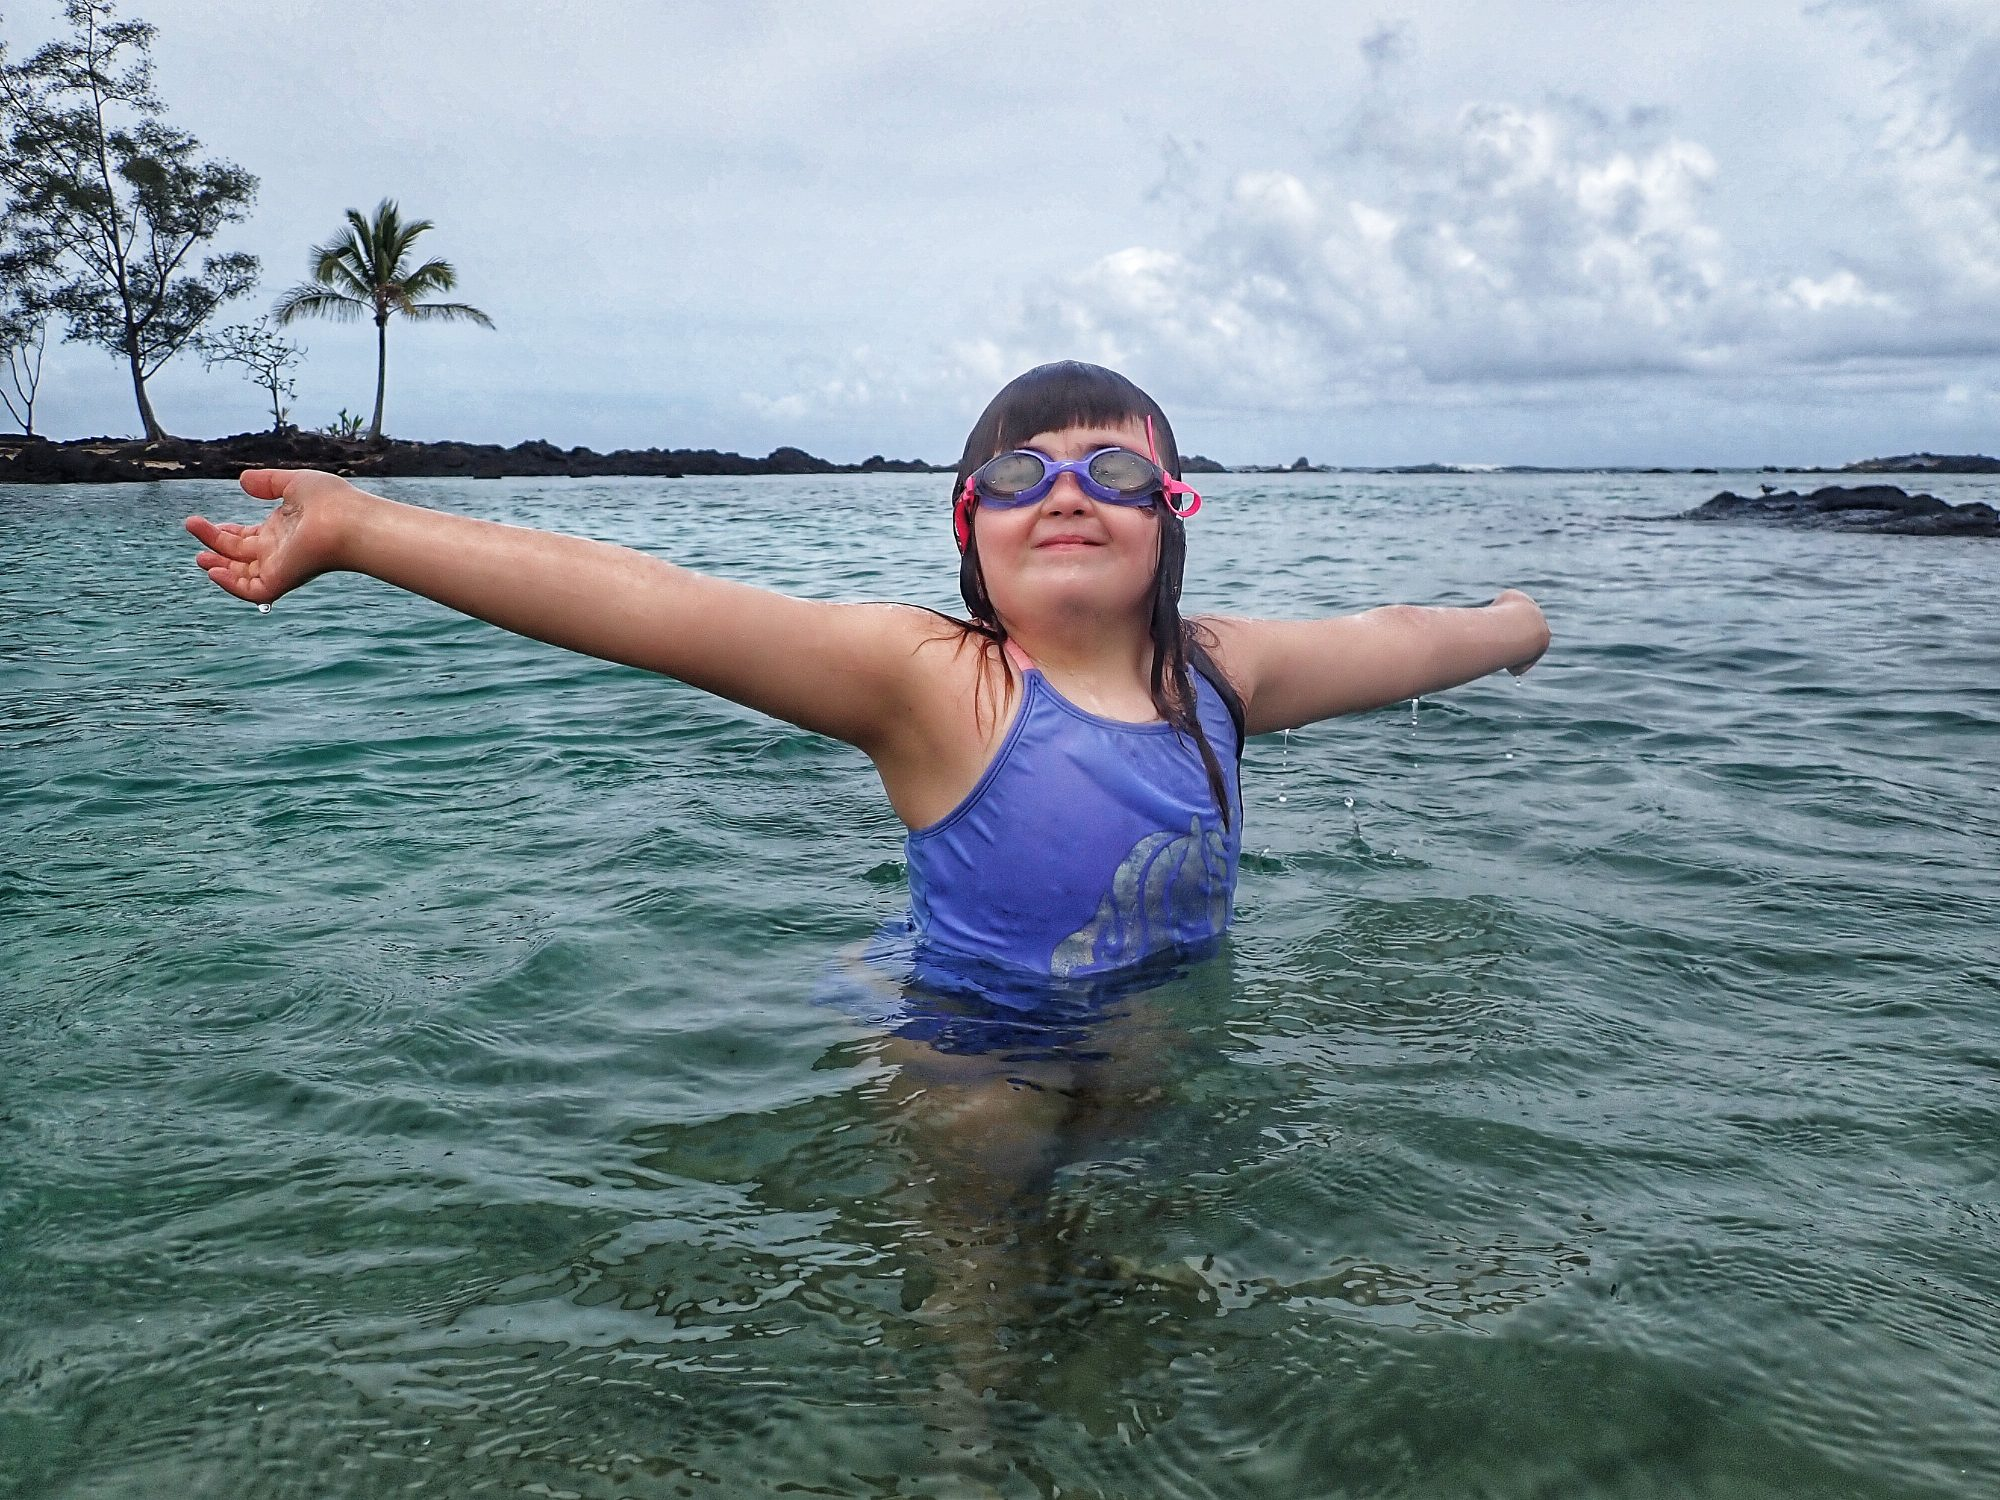 child in water with arms outstretched she is smiling, purple swim suit and goggles on